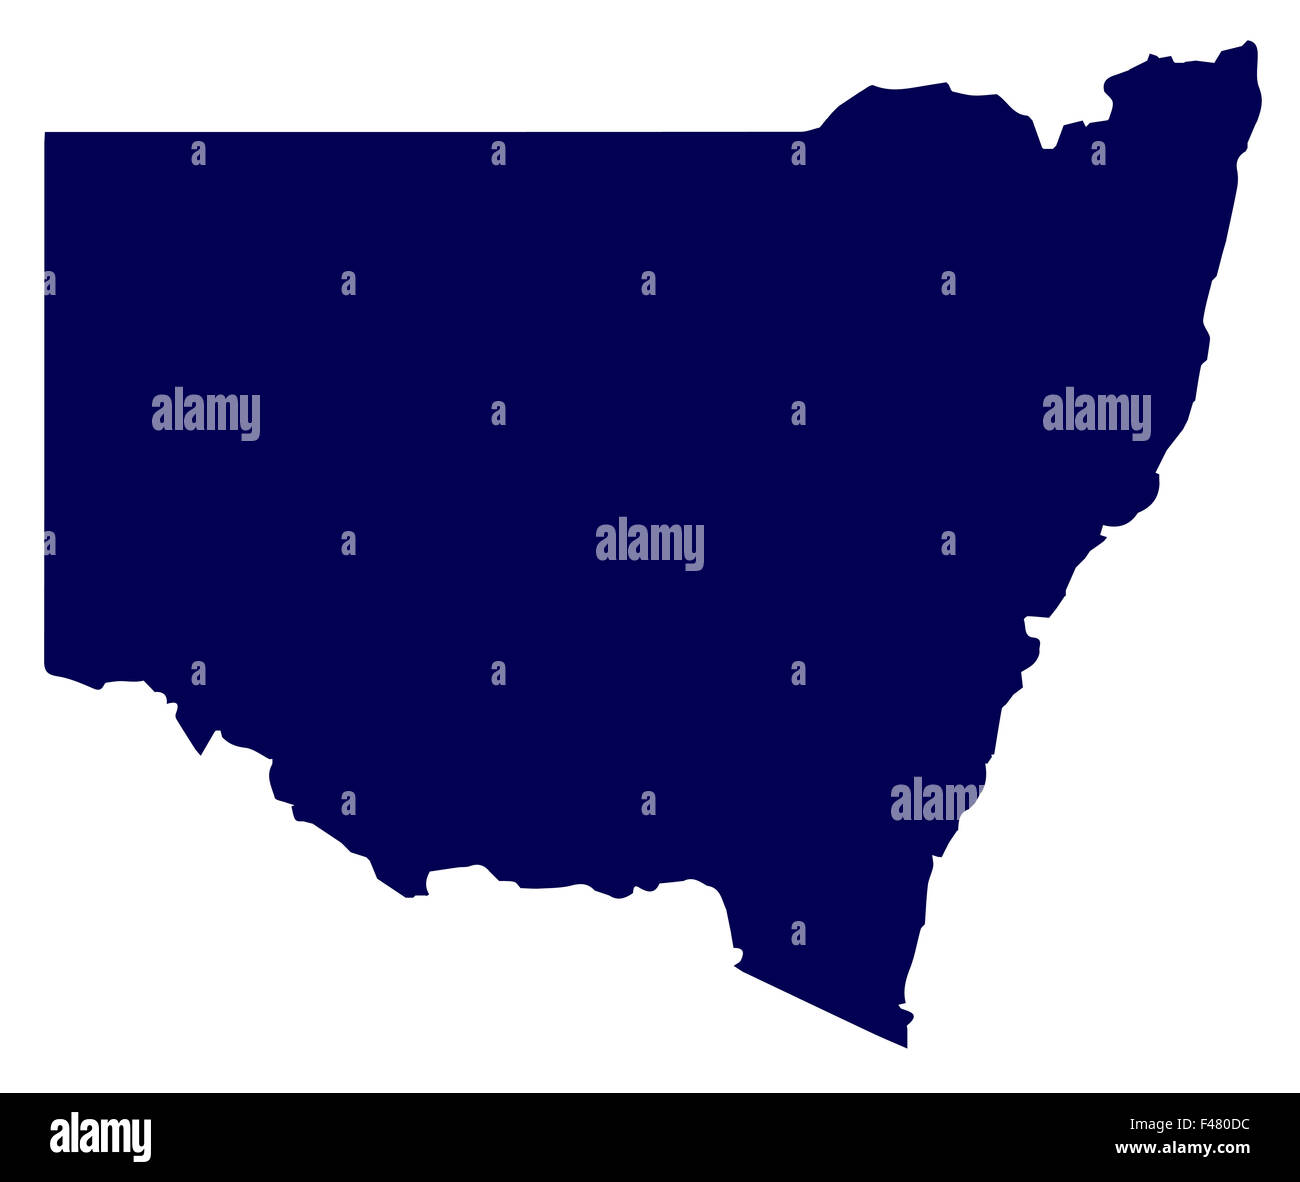 Silhouette map of the Australian state of New South Wales over a white background - Stock Image